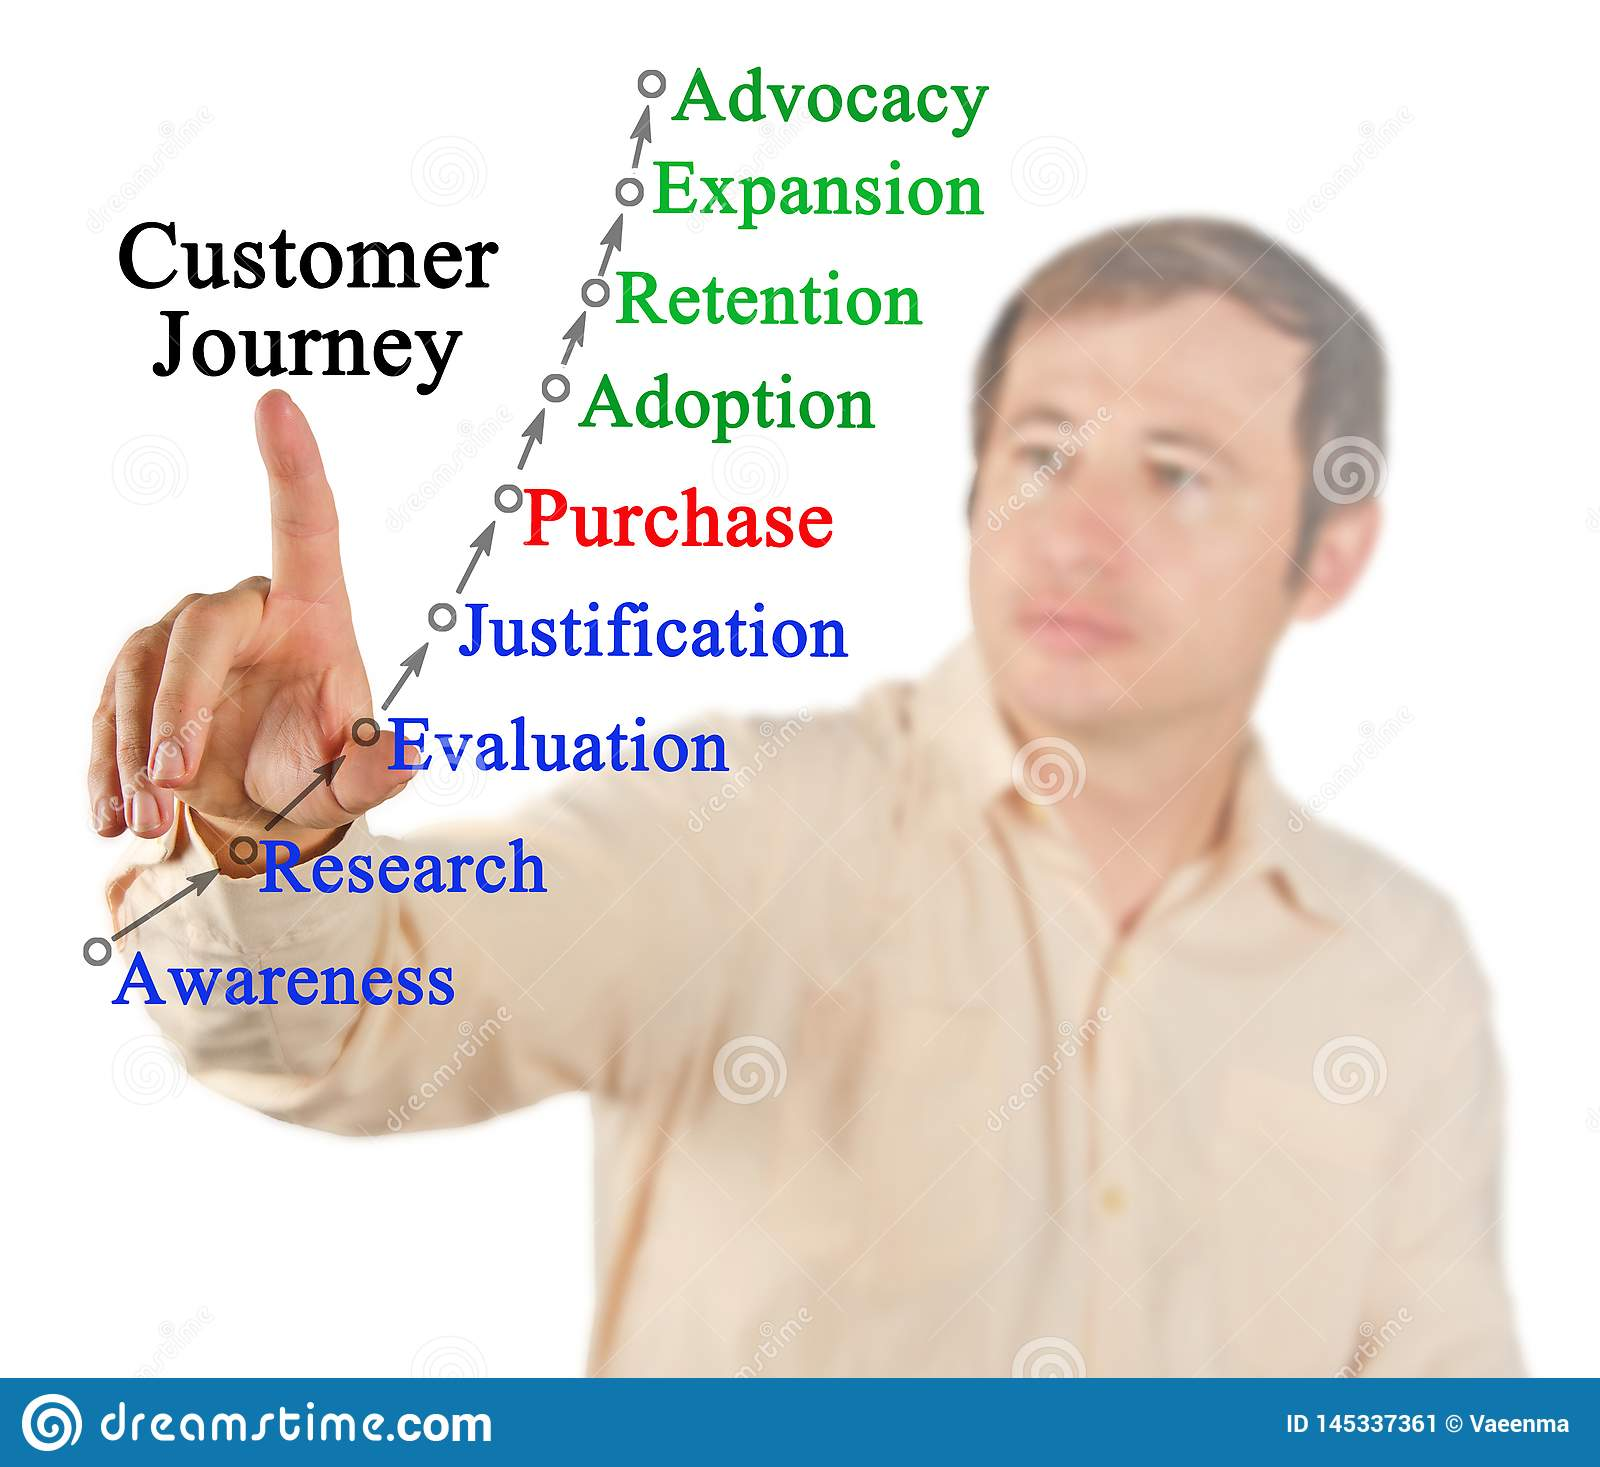 Model of Customer Journey